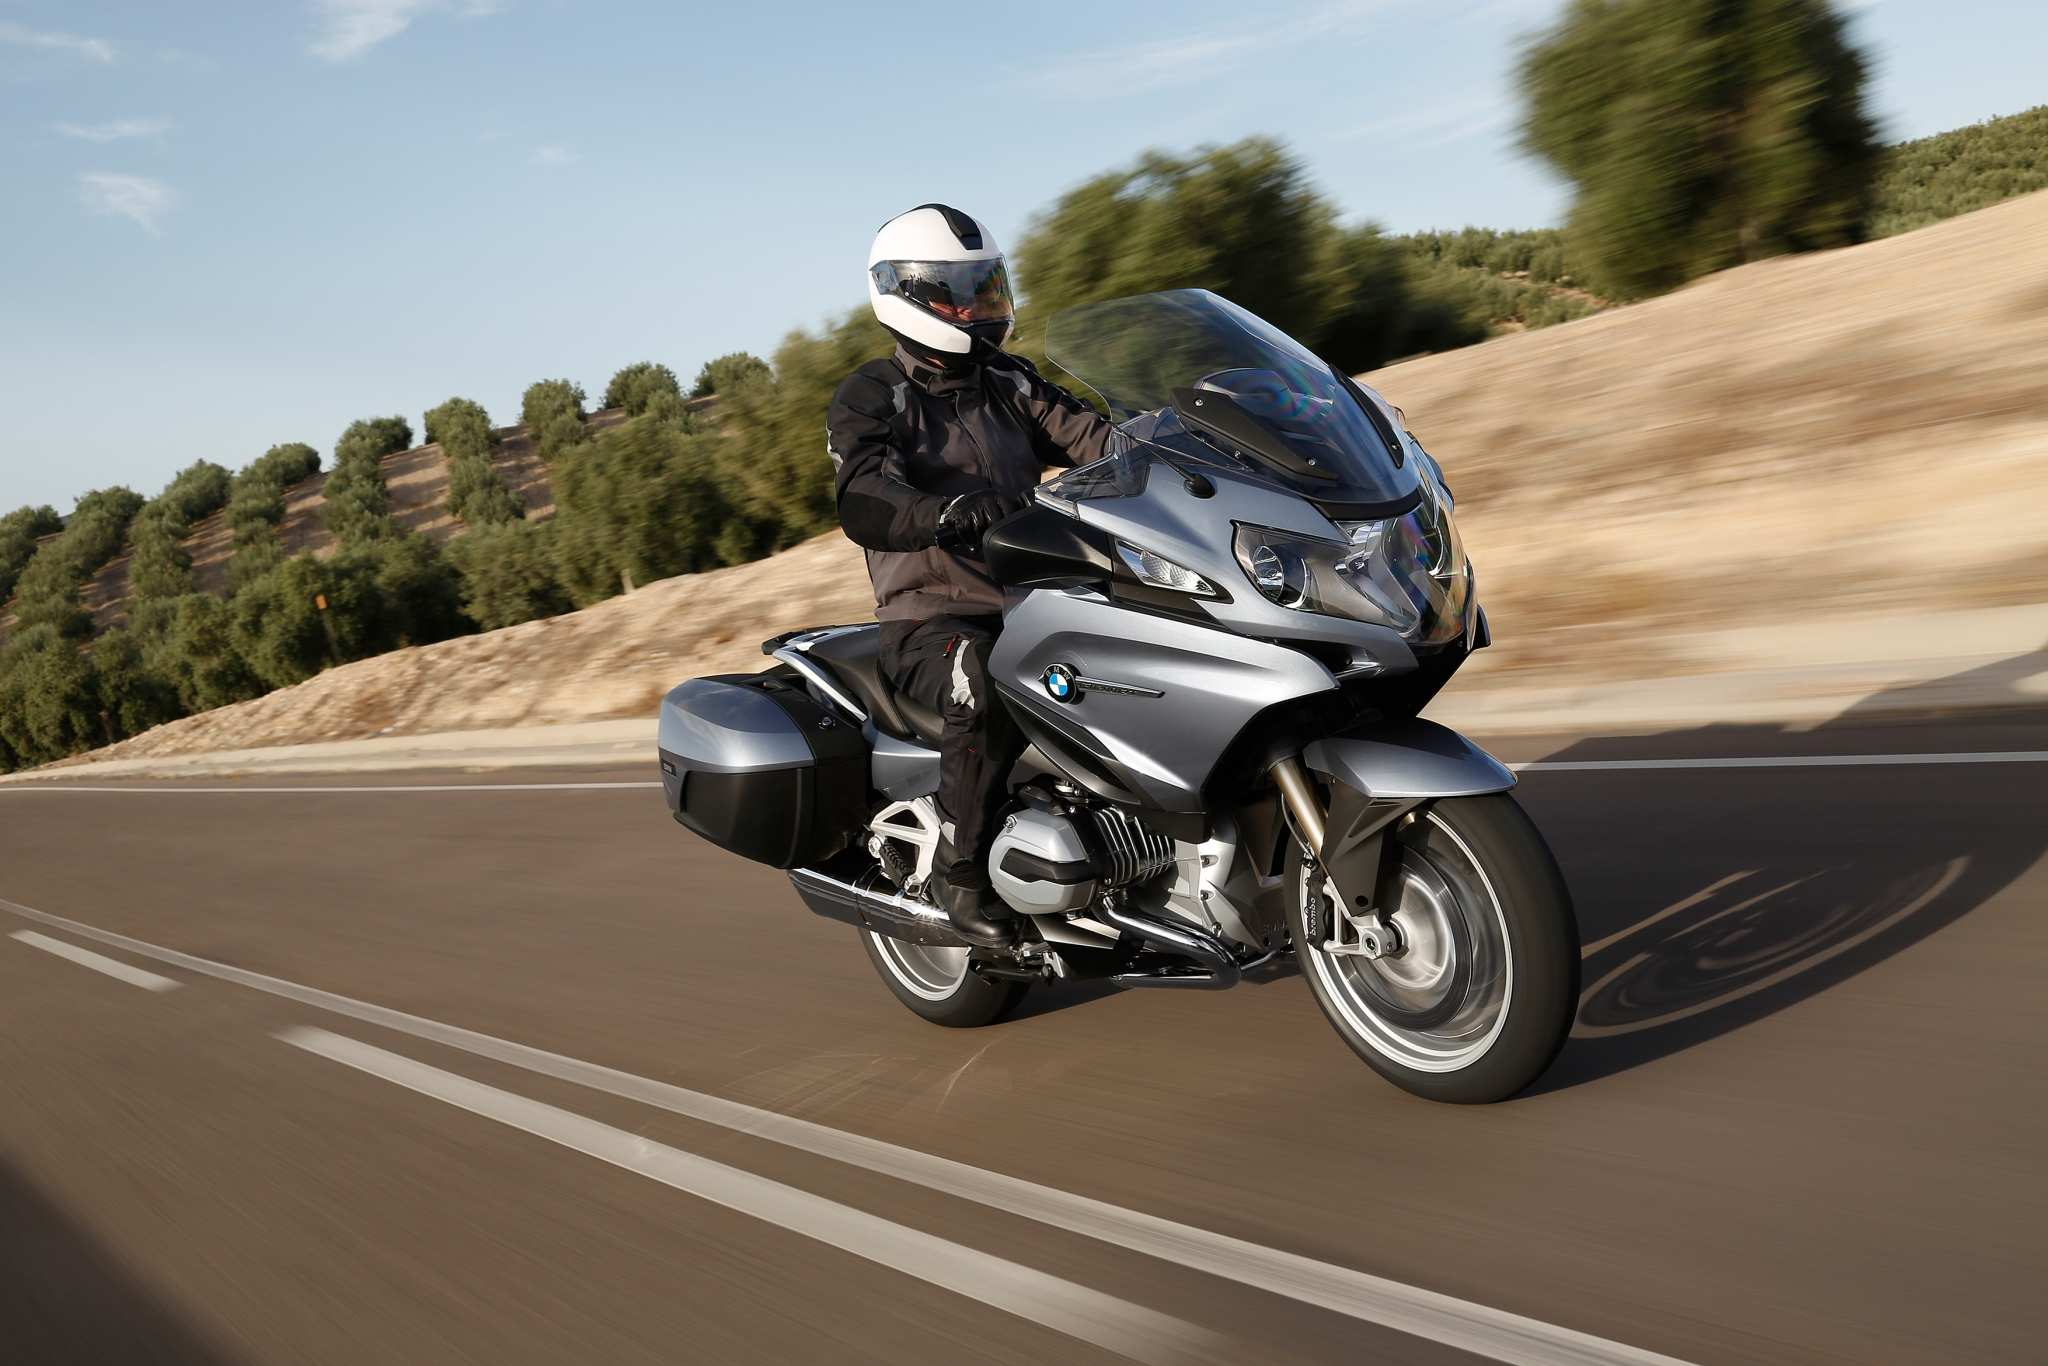 82 New BMW R1200Rt 2020 Prices for BMW R1200Rt 2020